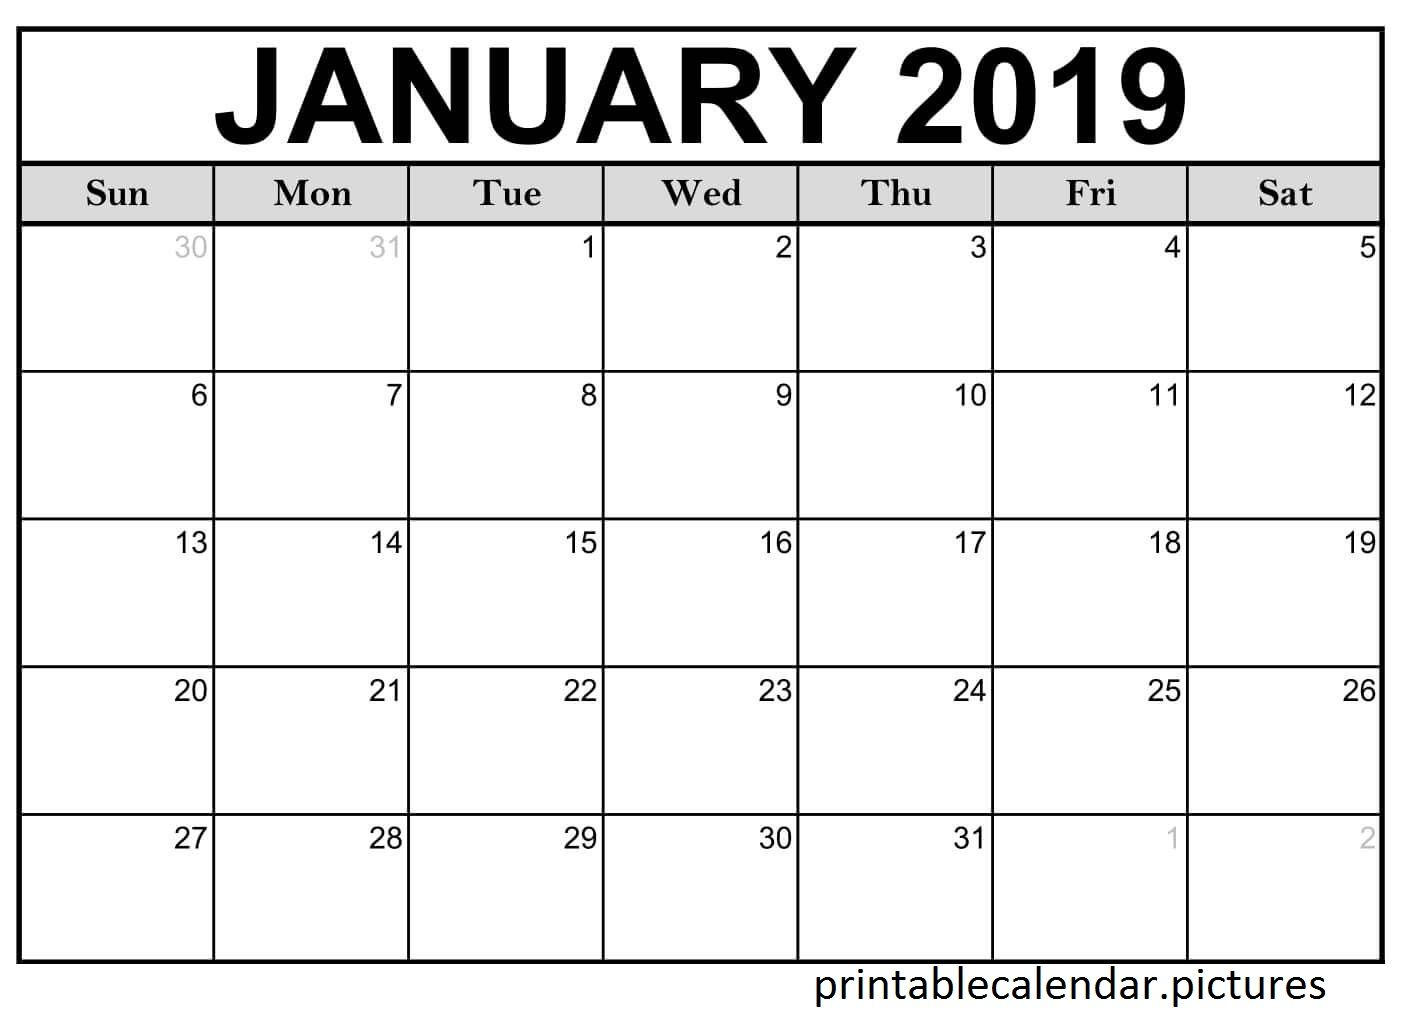 Printable Calendar January 2019 Monthly Printable Calendar